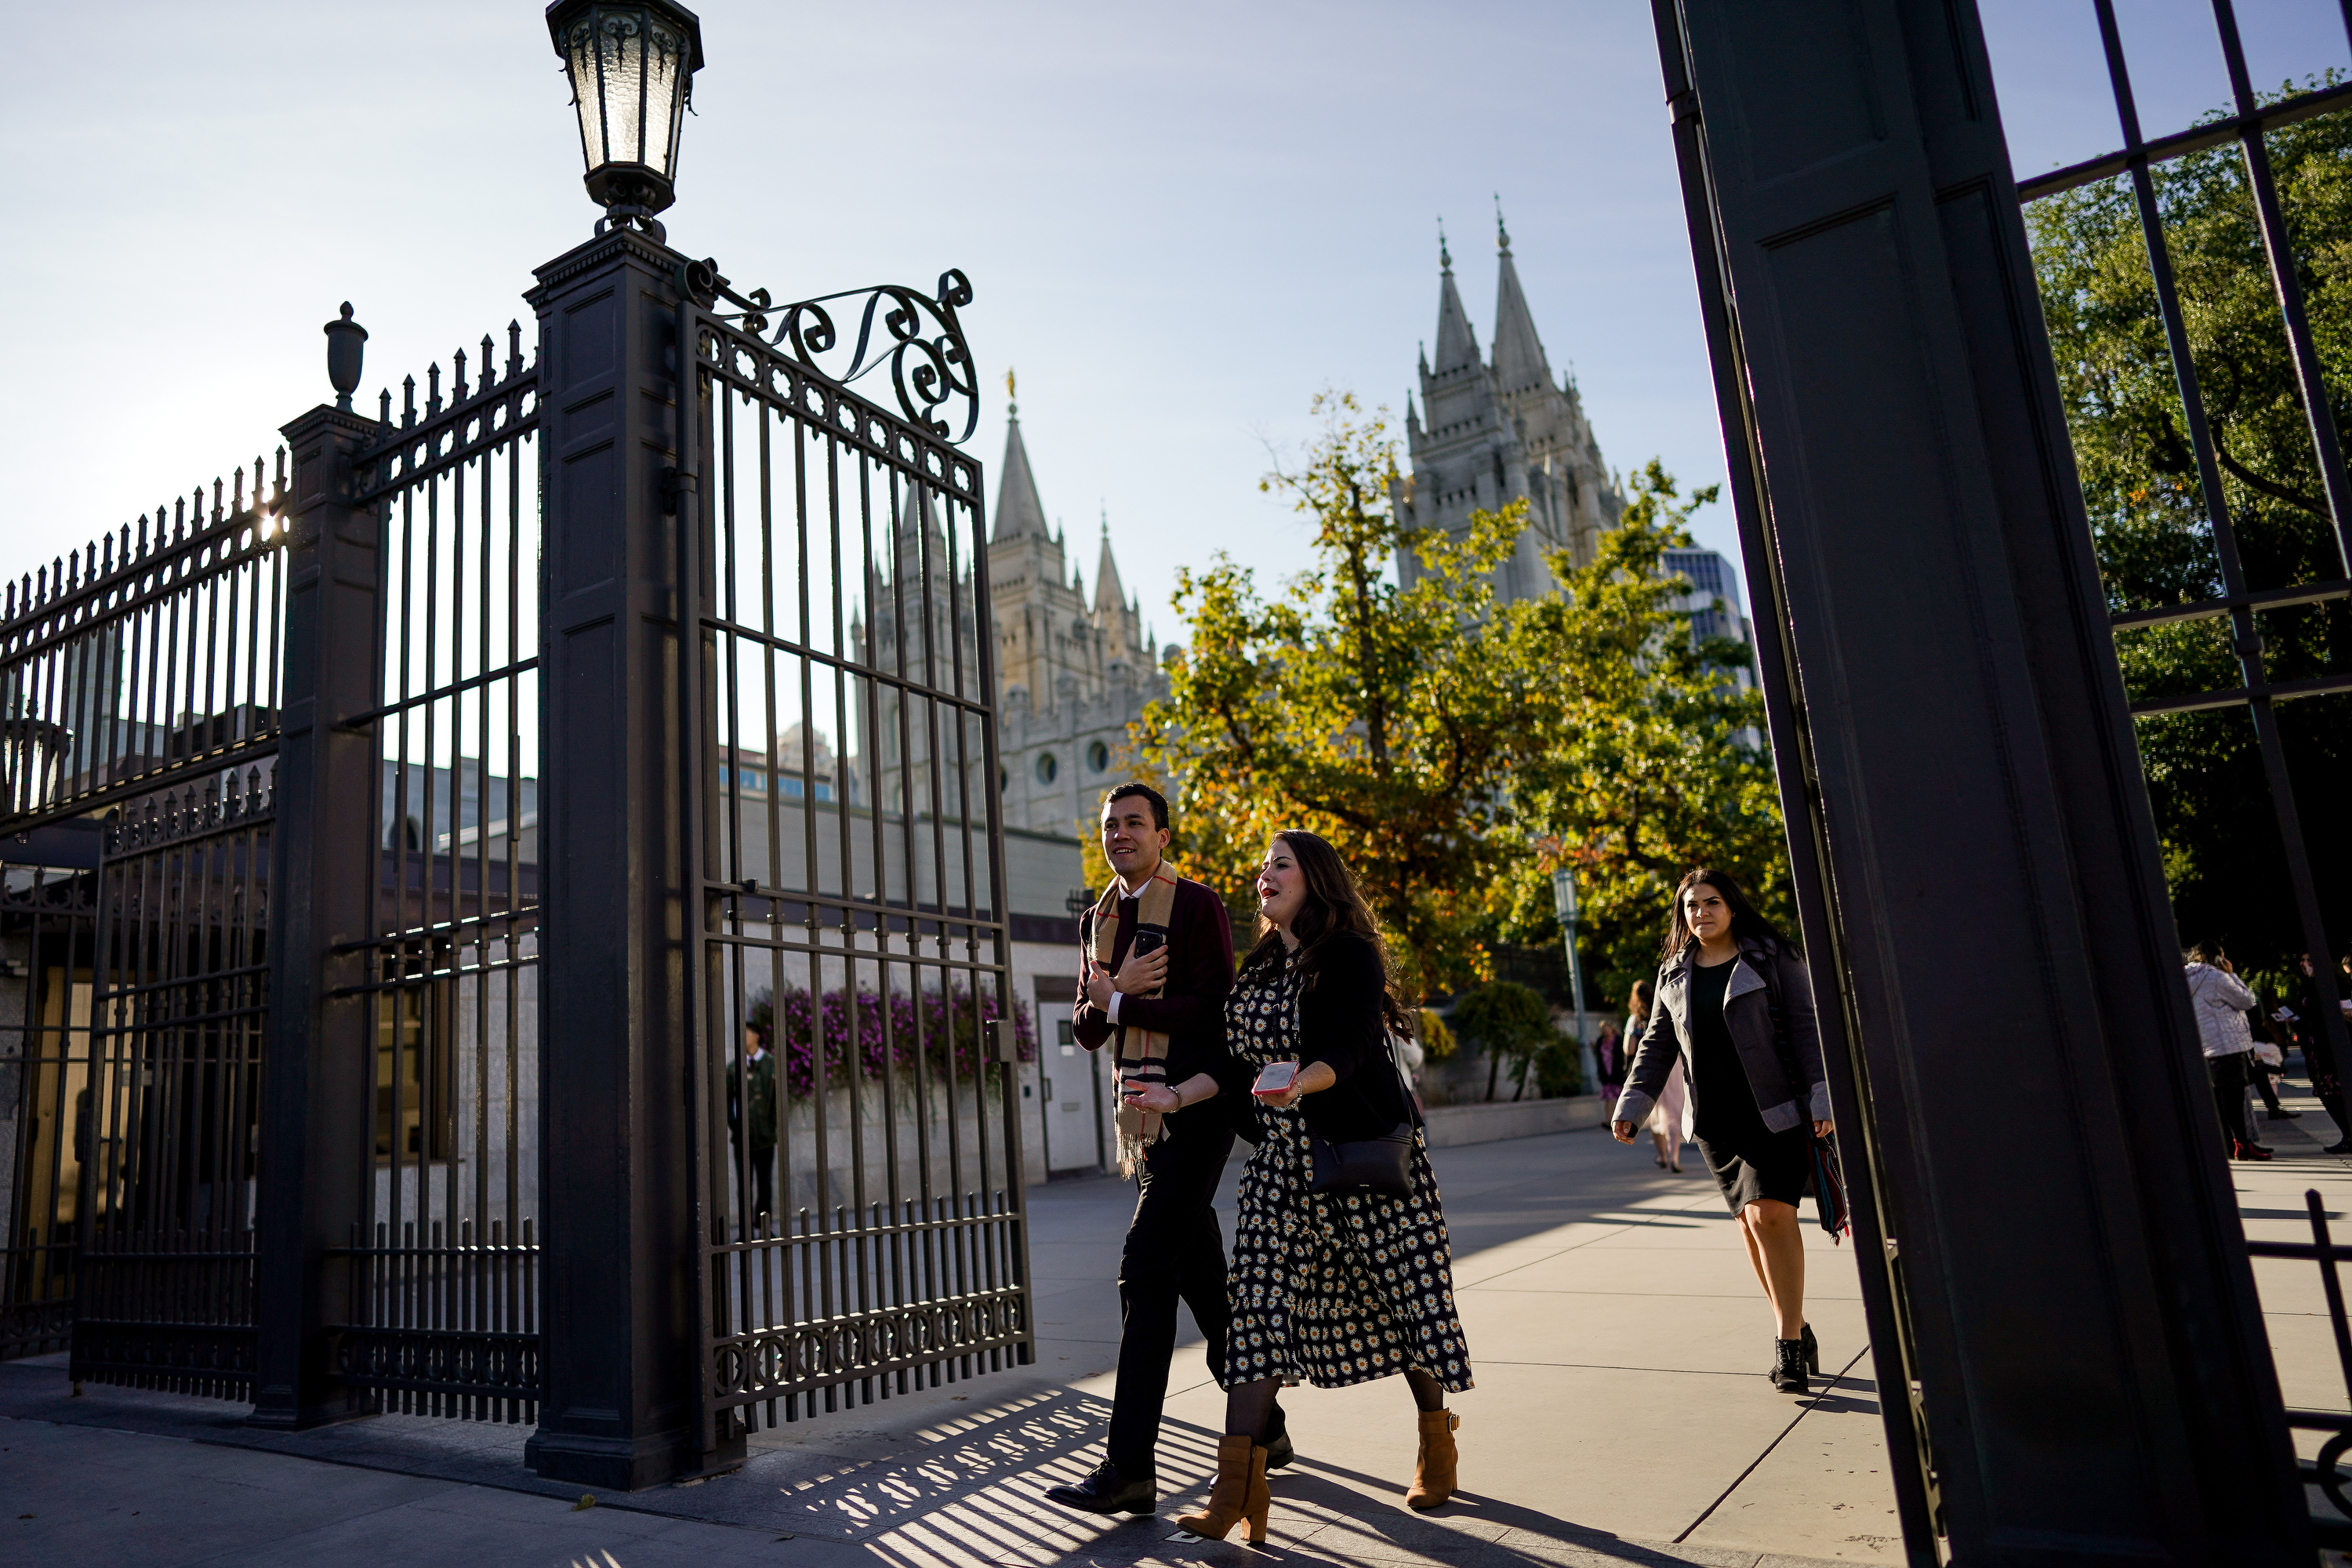 People walk through Temple Square before the Saturday morning session of the 189th Semiannual General Conference of The Church of Jesus Christ of Latter-day Saints at the Conference Center in Salt Lake City on Saturday, Oct. 5, 2019.